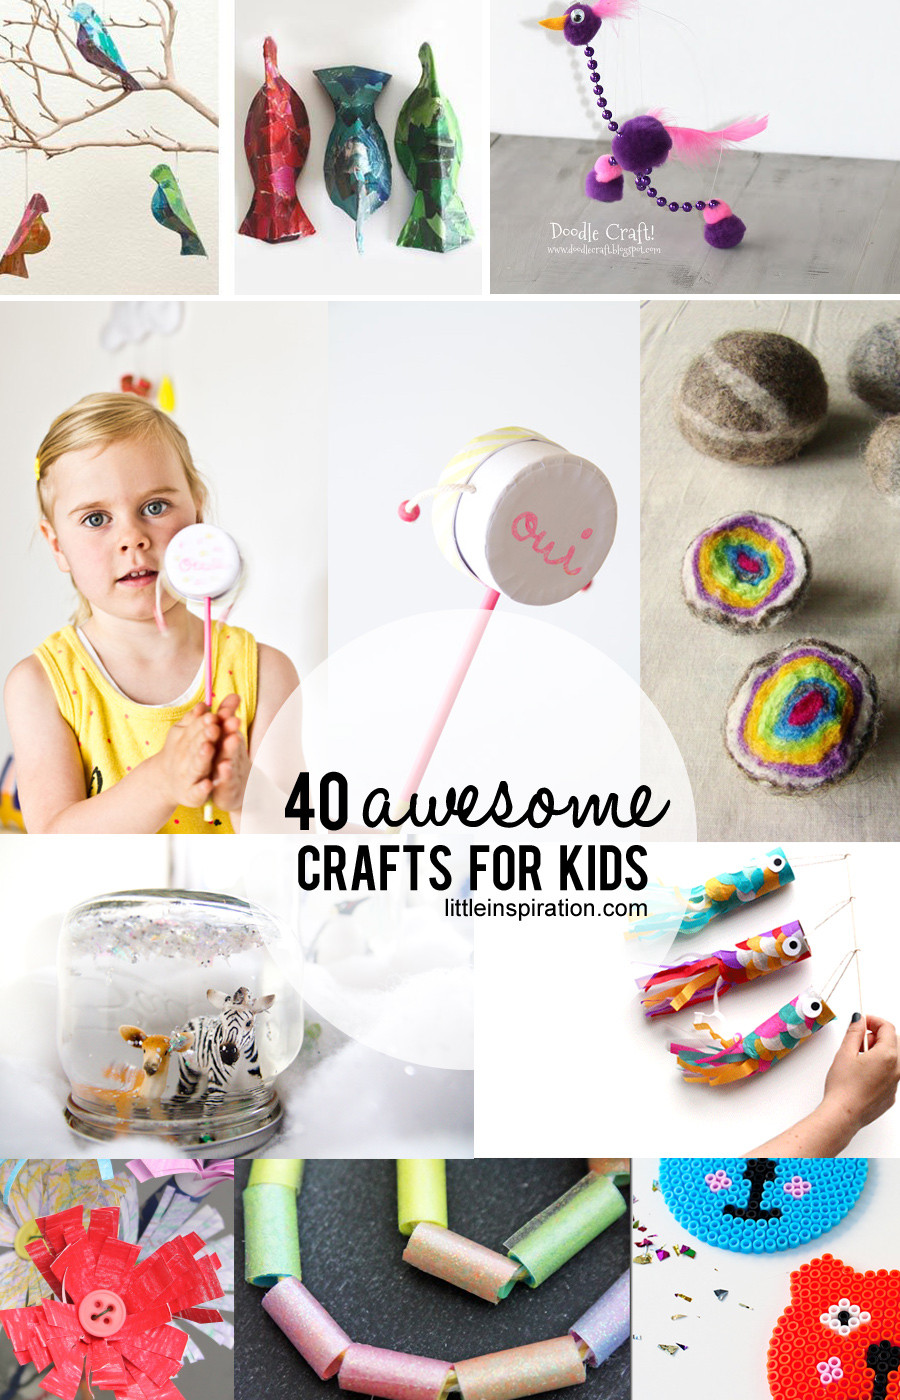 Best ideas about Crafts For Little Kids . Save or Pin 40 Awesome Crafts for Kids Little Inspiration Now.